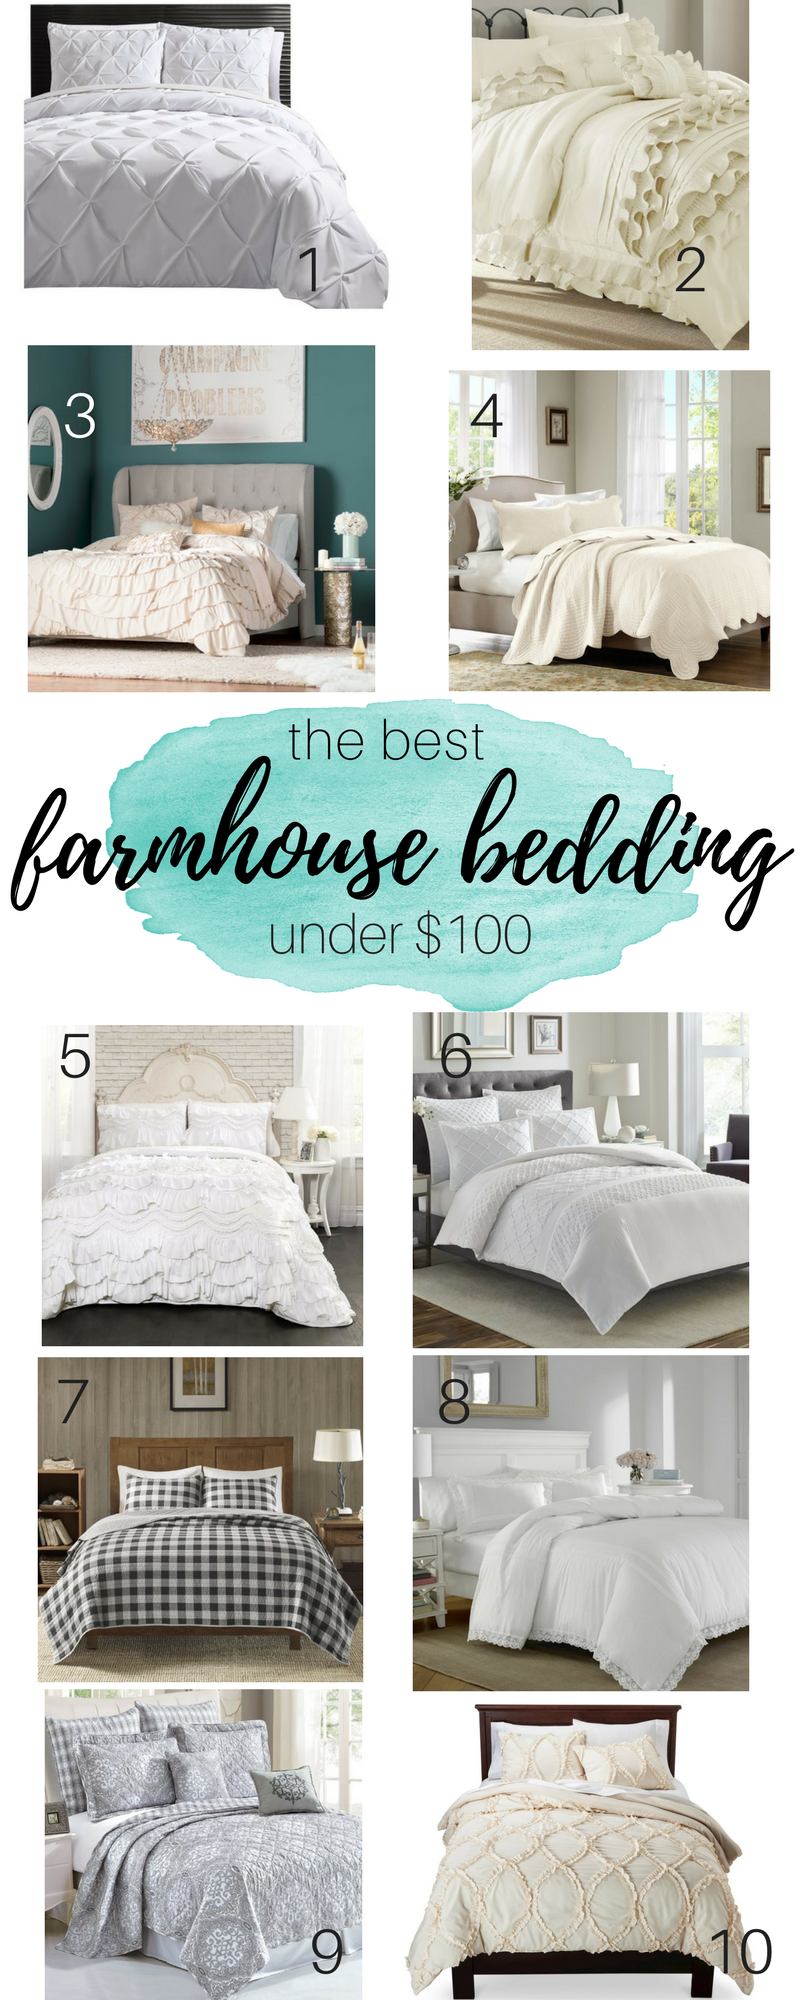 Gorgeous farmhouse bedding options all under $100! So many beautiful choices - which one is your favorite?